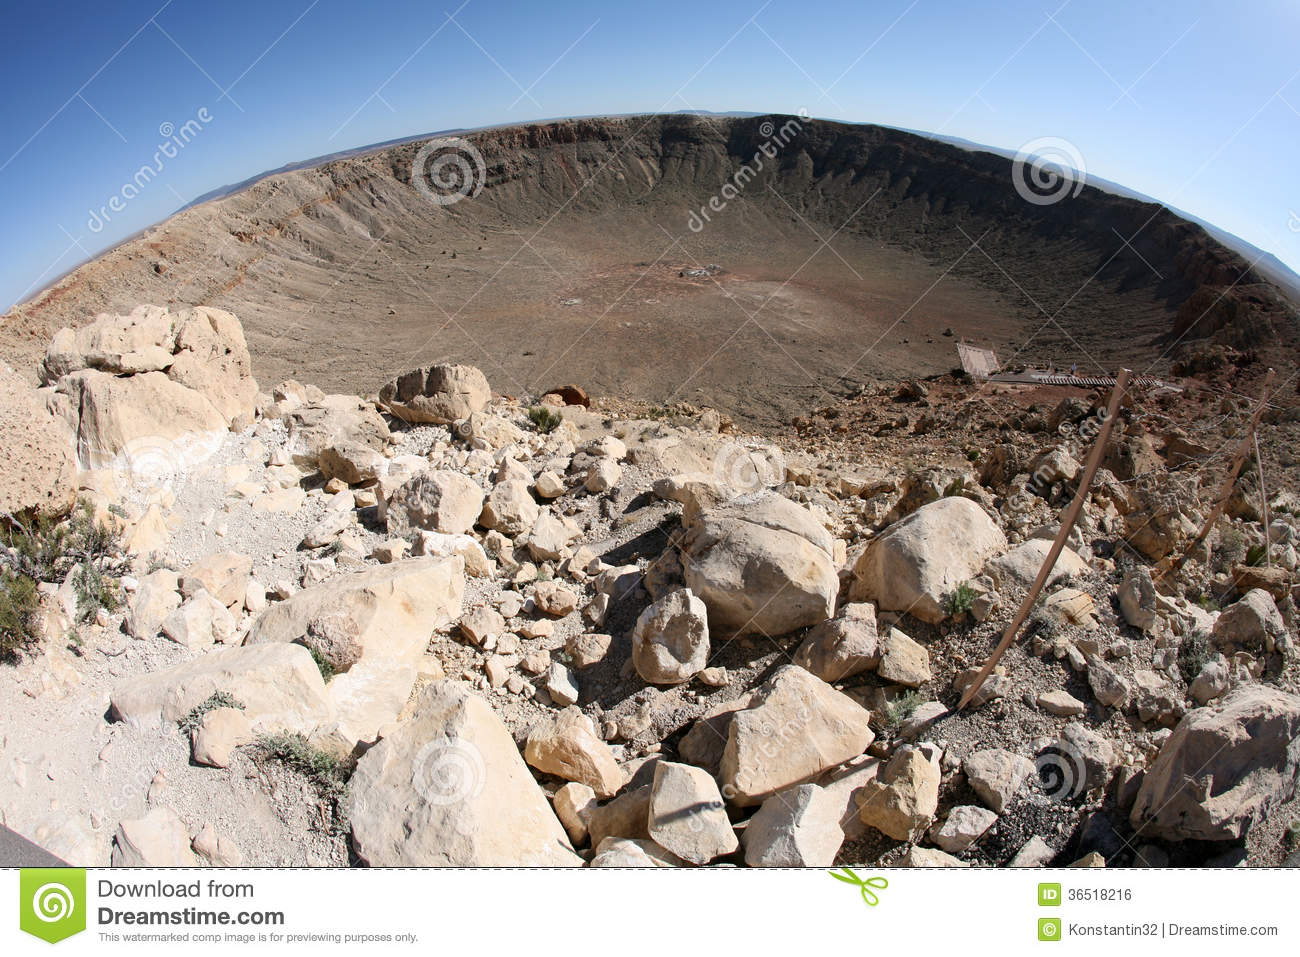 Winslow (AZ) United States  City pictures : Meteor Impact Crater Winslow Arizona USA Royalty Free Stock Image ...